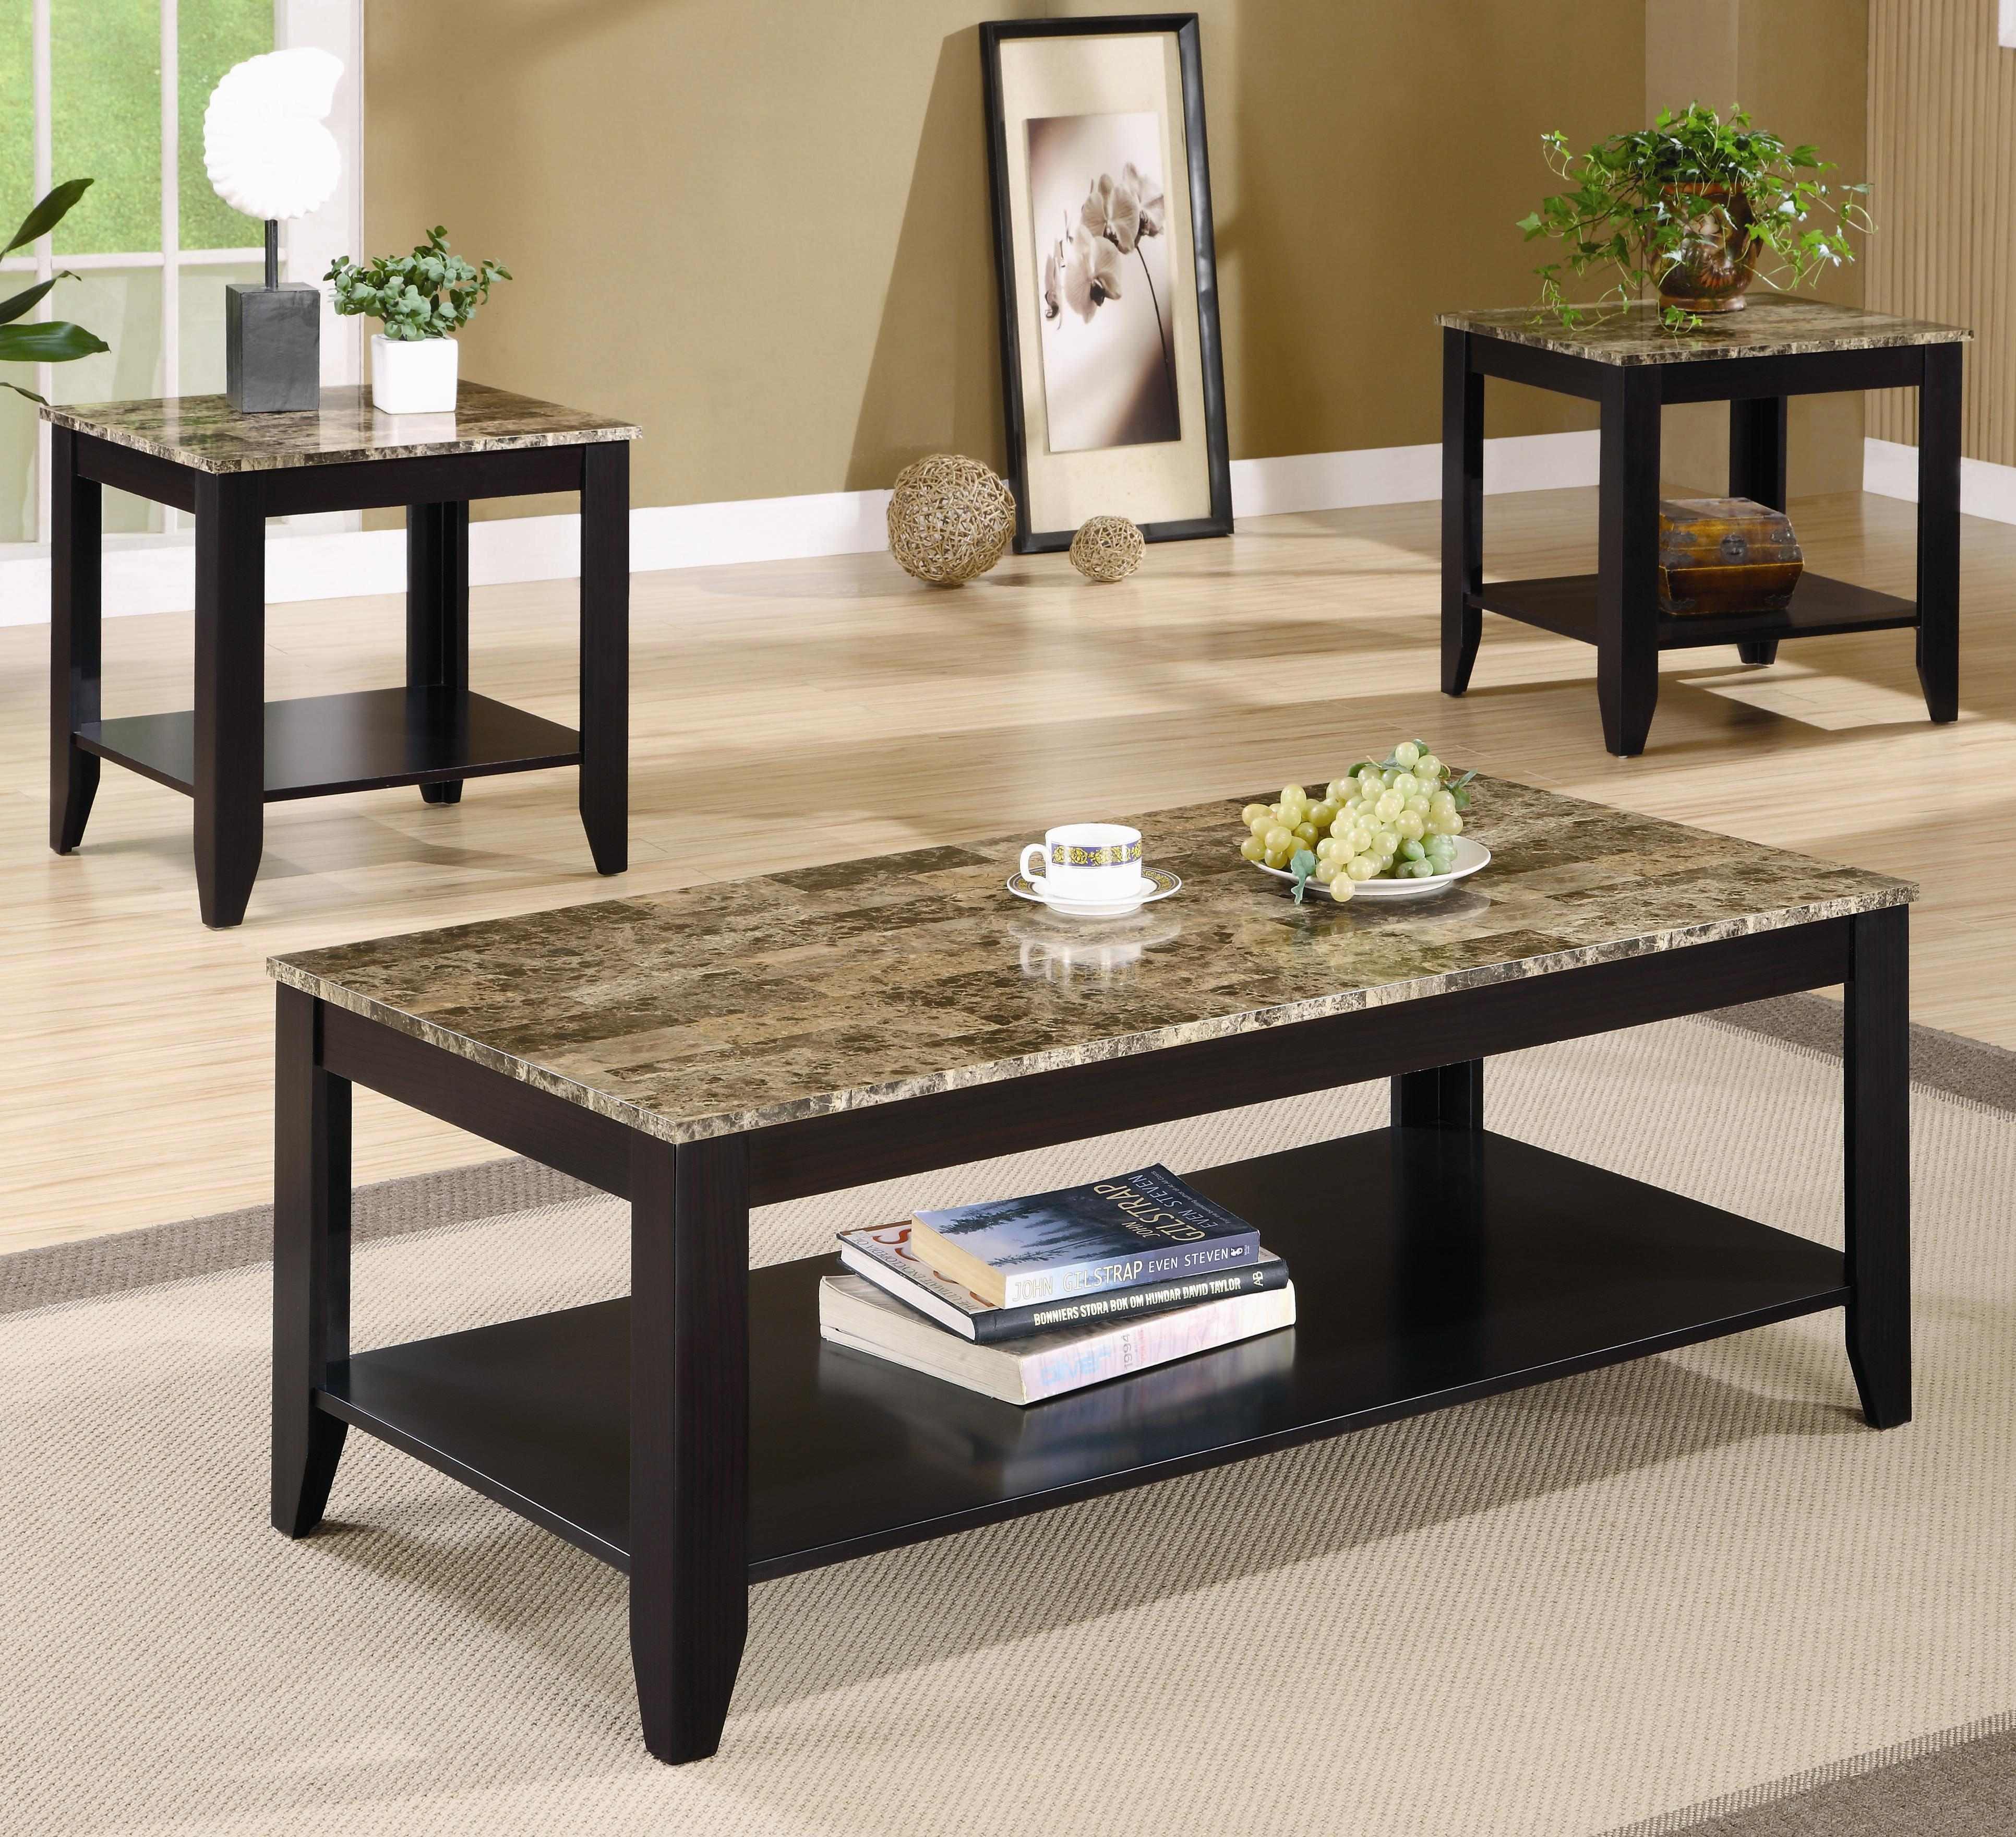 Table Set. Coffee Table : 3 piece black coffee table sets - Pezcame.Com